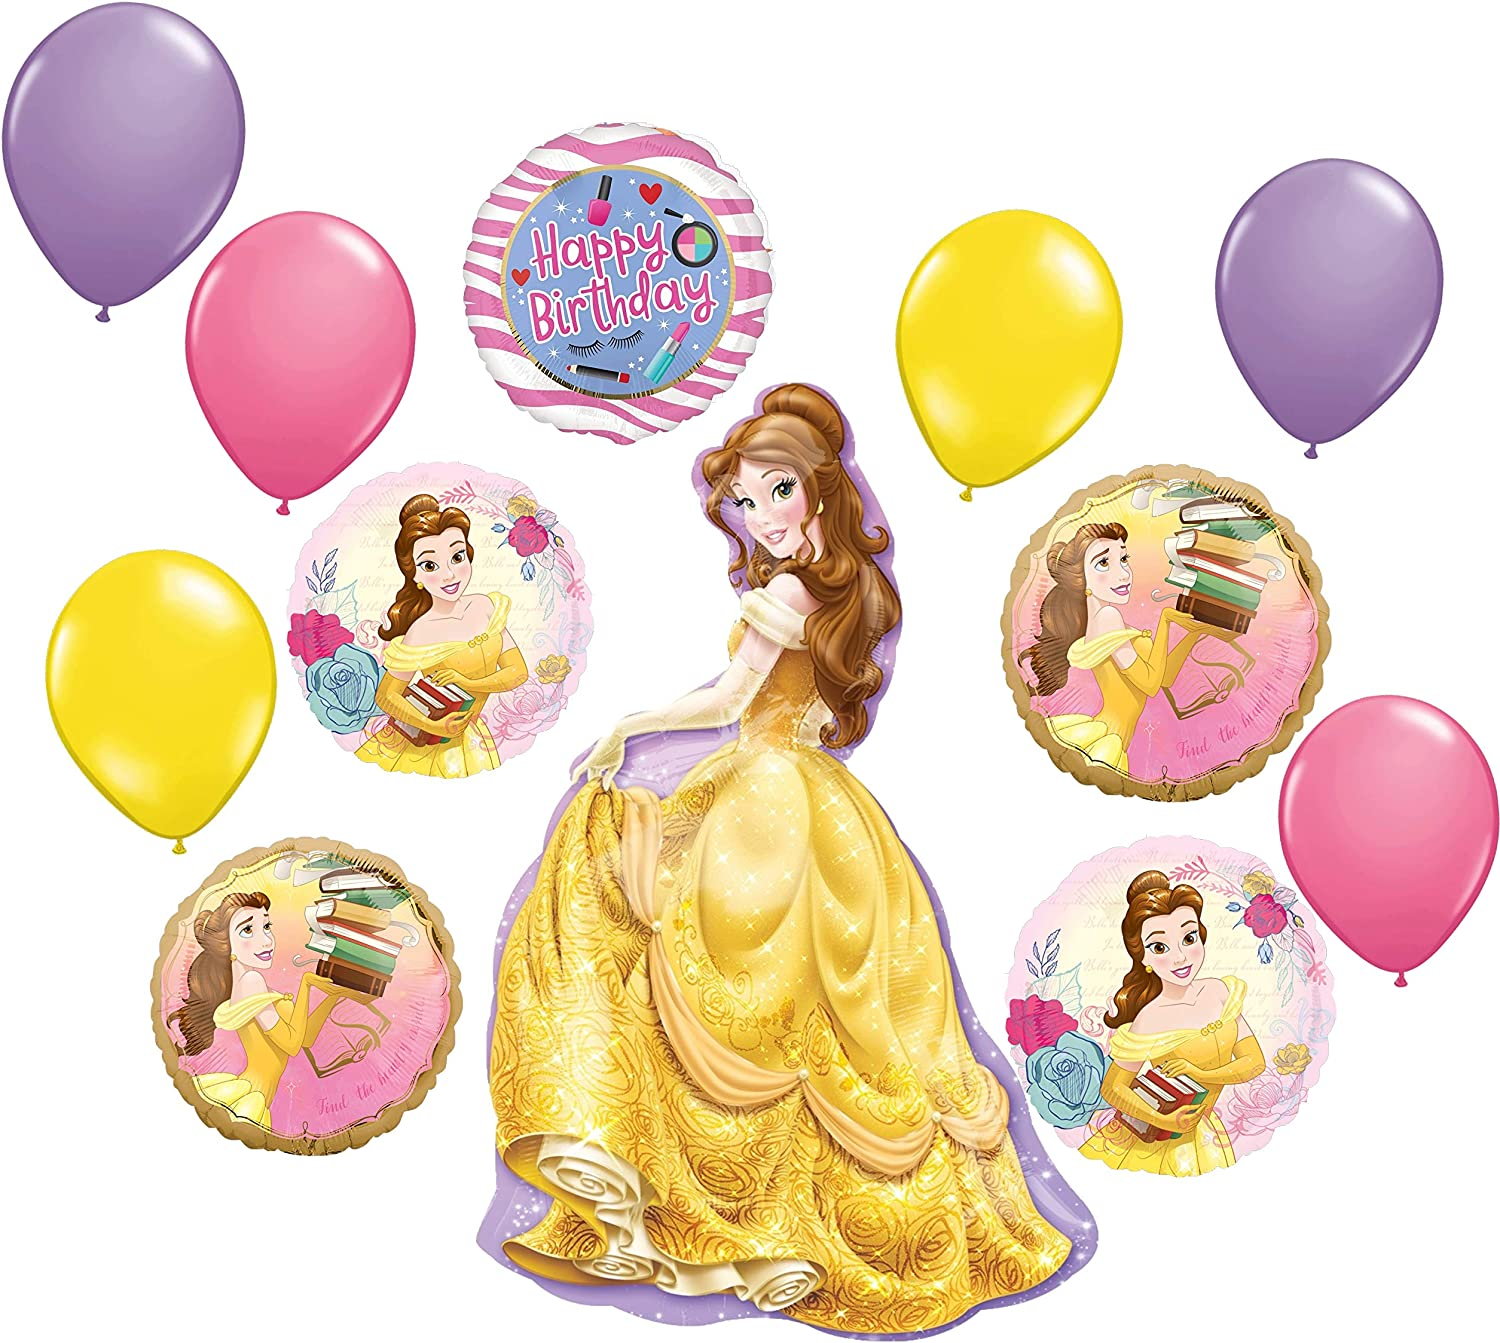 Beauty and the Beast Party Supplies Princess Belle Birthday Balloon Bouquet Decorations 12 piece kit